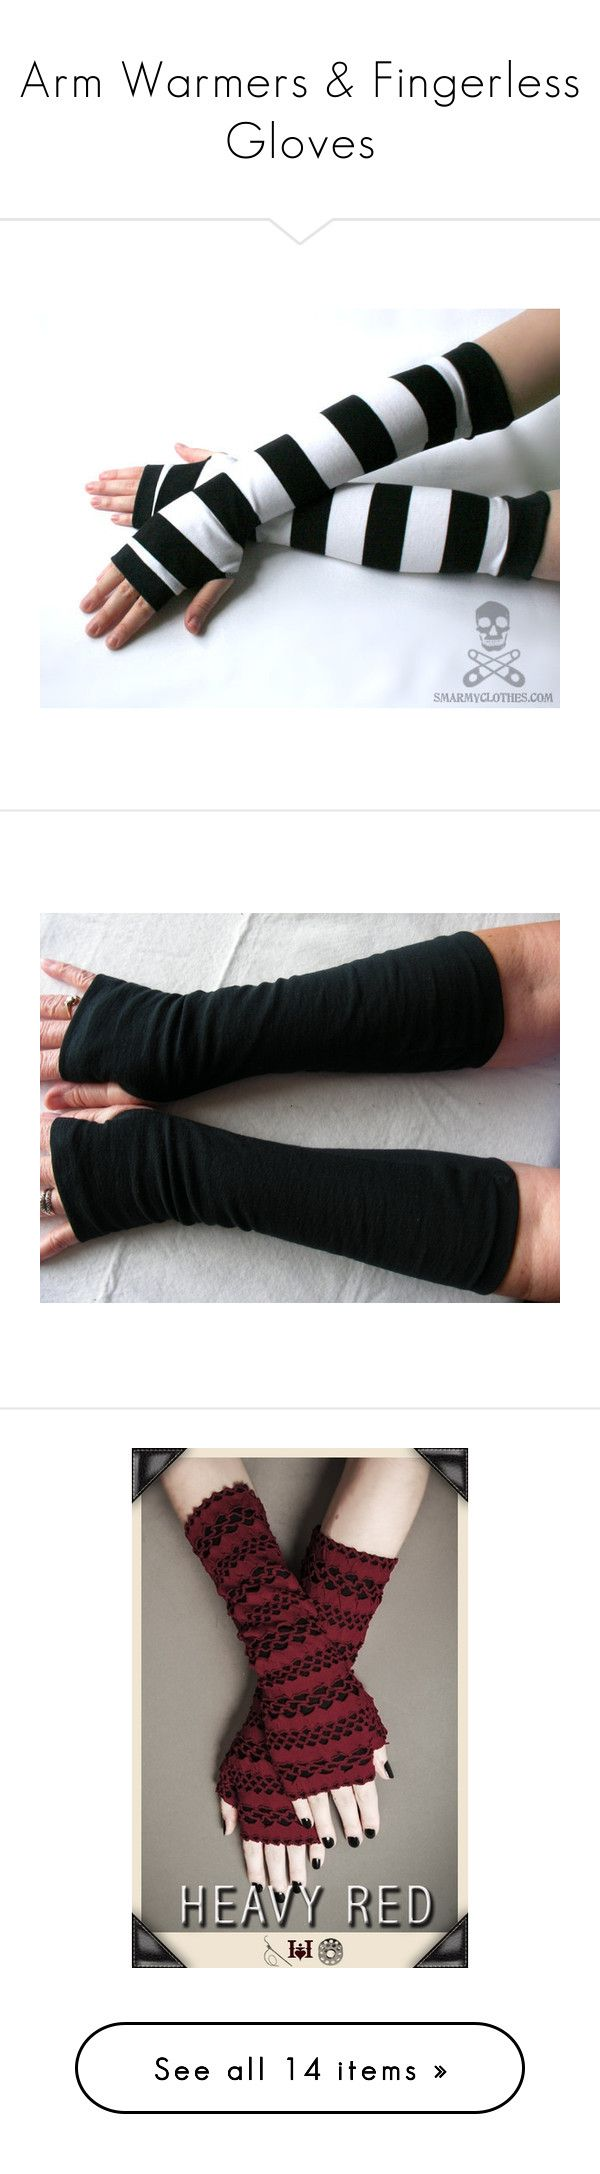 """""""Arm Warmers & Fingerless Gloves"""" by corky-1991 ❤ liked on Polyvore featuring accessories, gloves, luvas, black, punk gloves, fingerless gloves, rock gloves, striped gloves, striped fingerless gloves and mitt"""